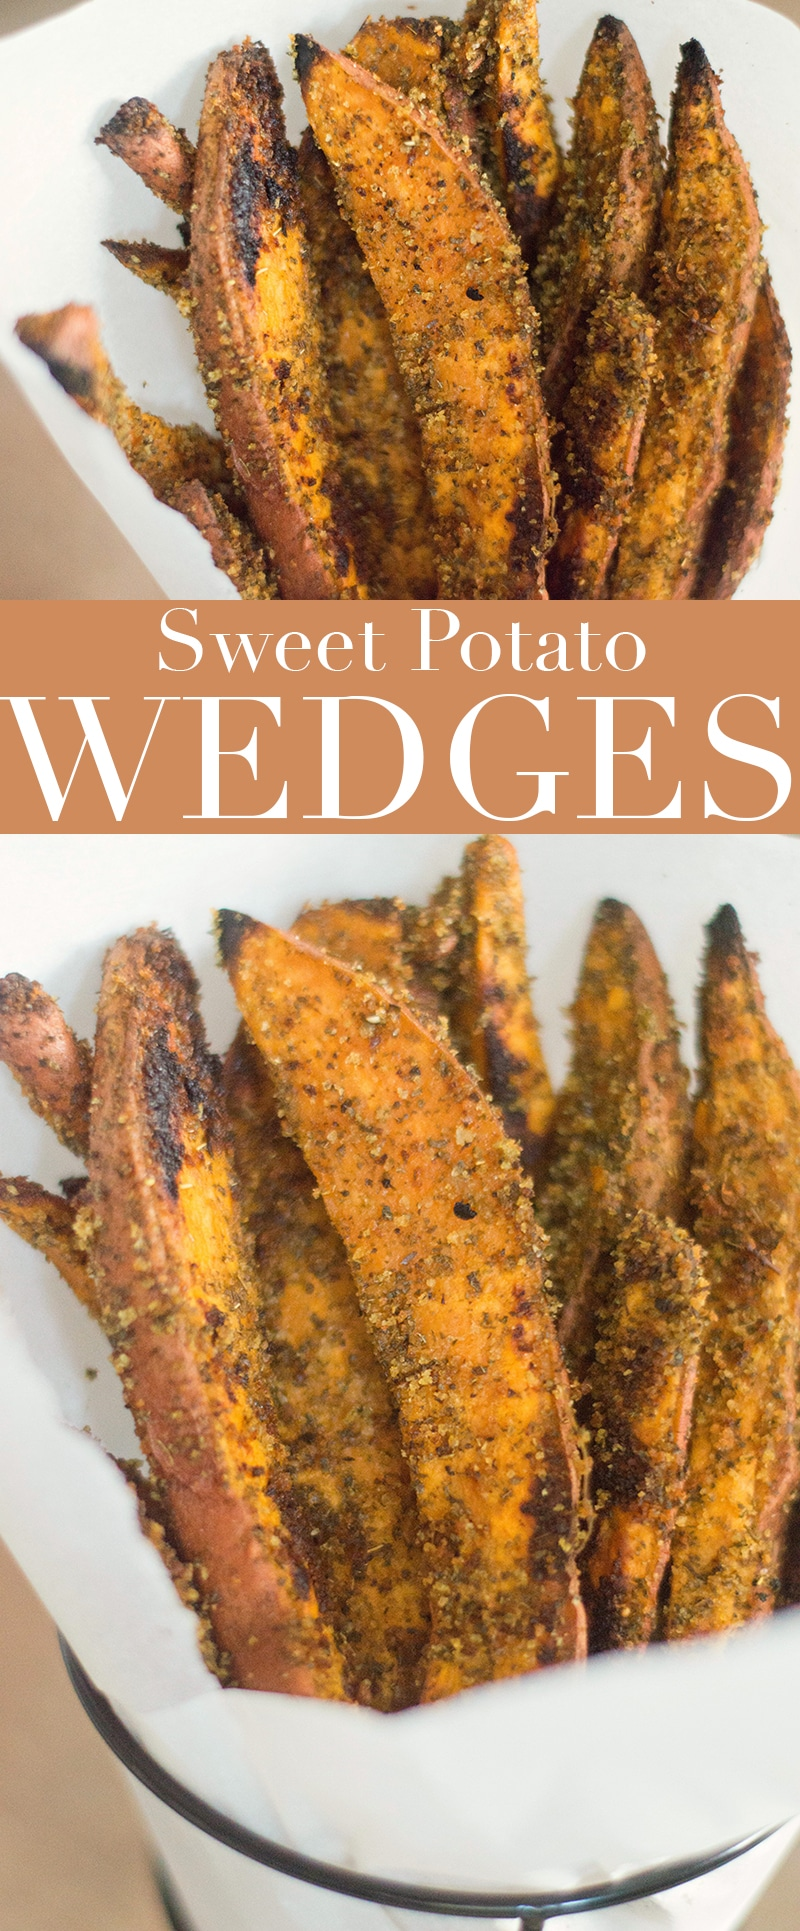 This vegan sweet potato wedge recipe is quick and easy to make. It takes only 5 ingredients and they are perfect thanksgiving side or an afternoon snack.